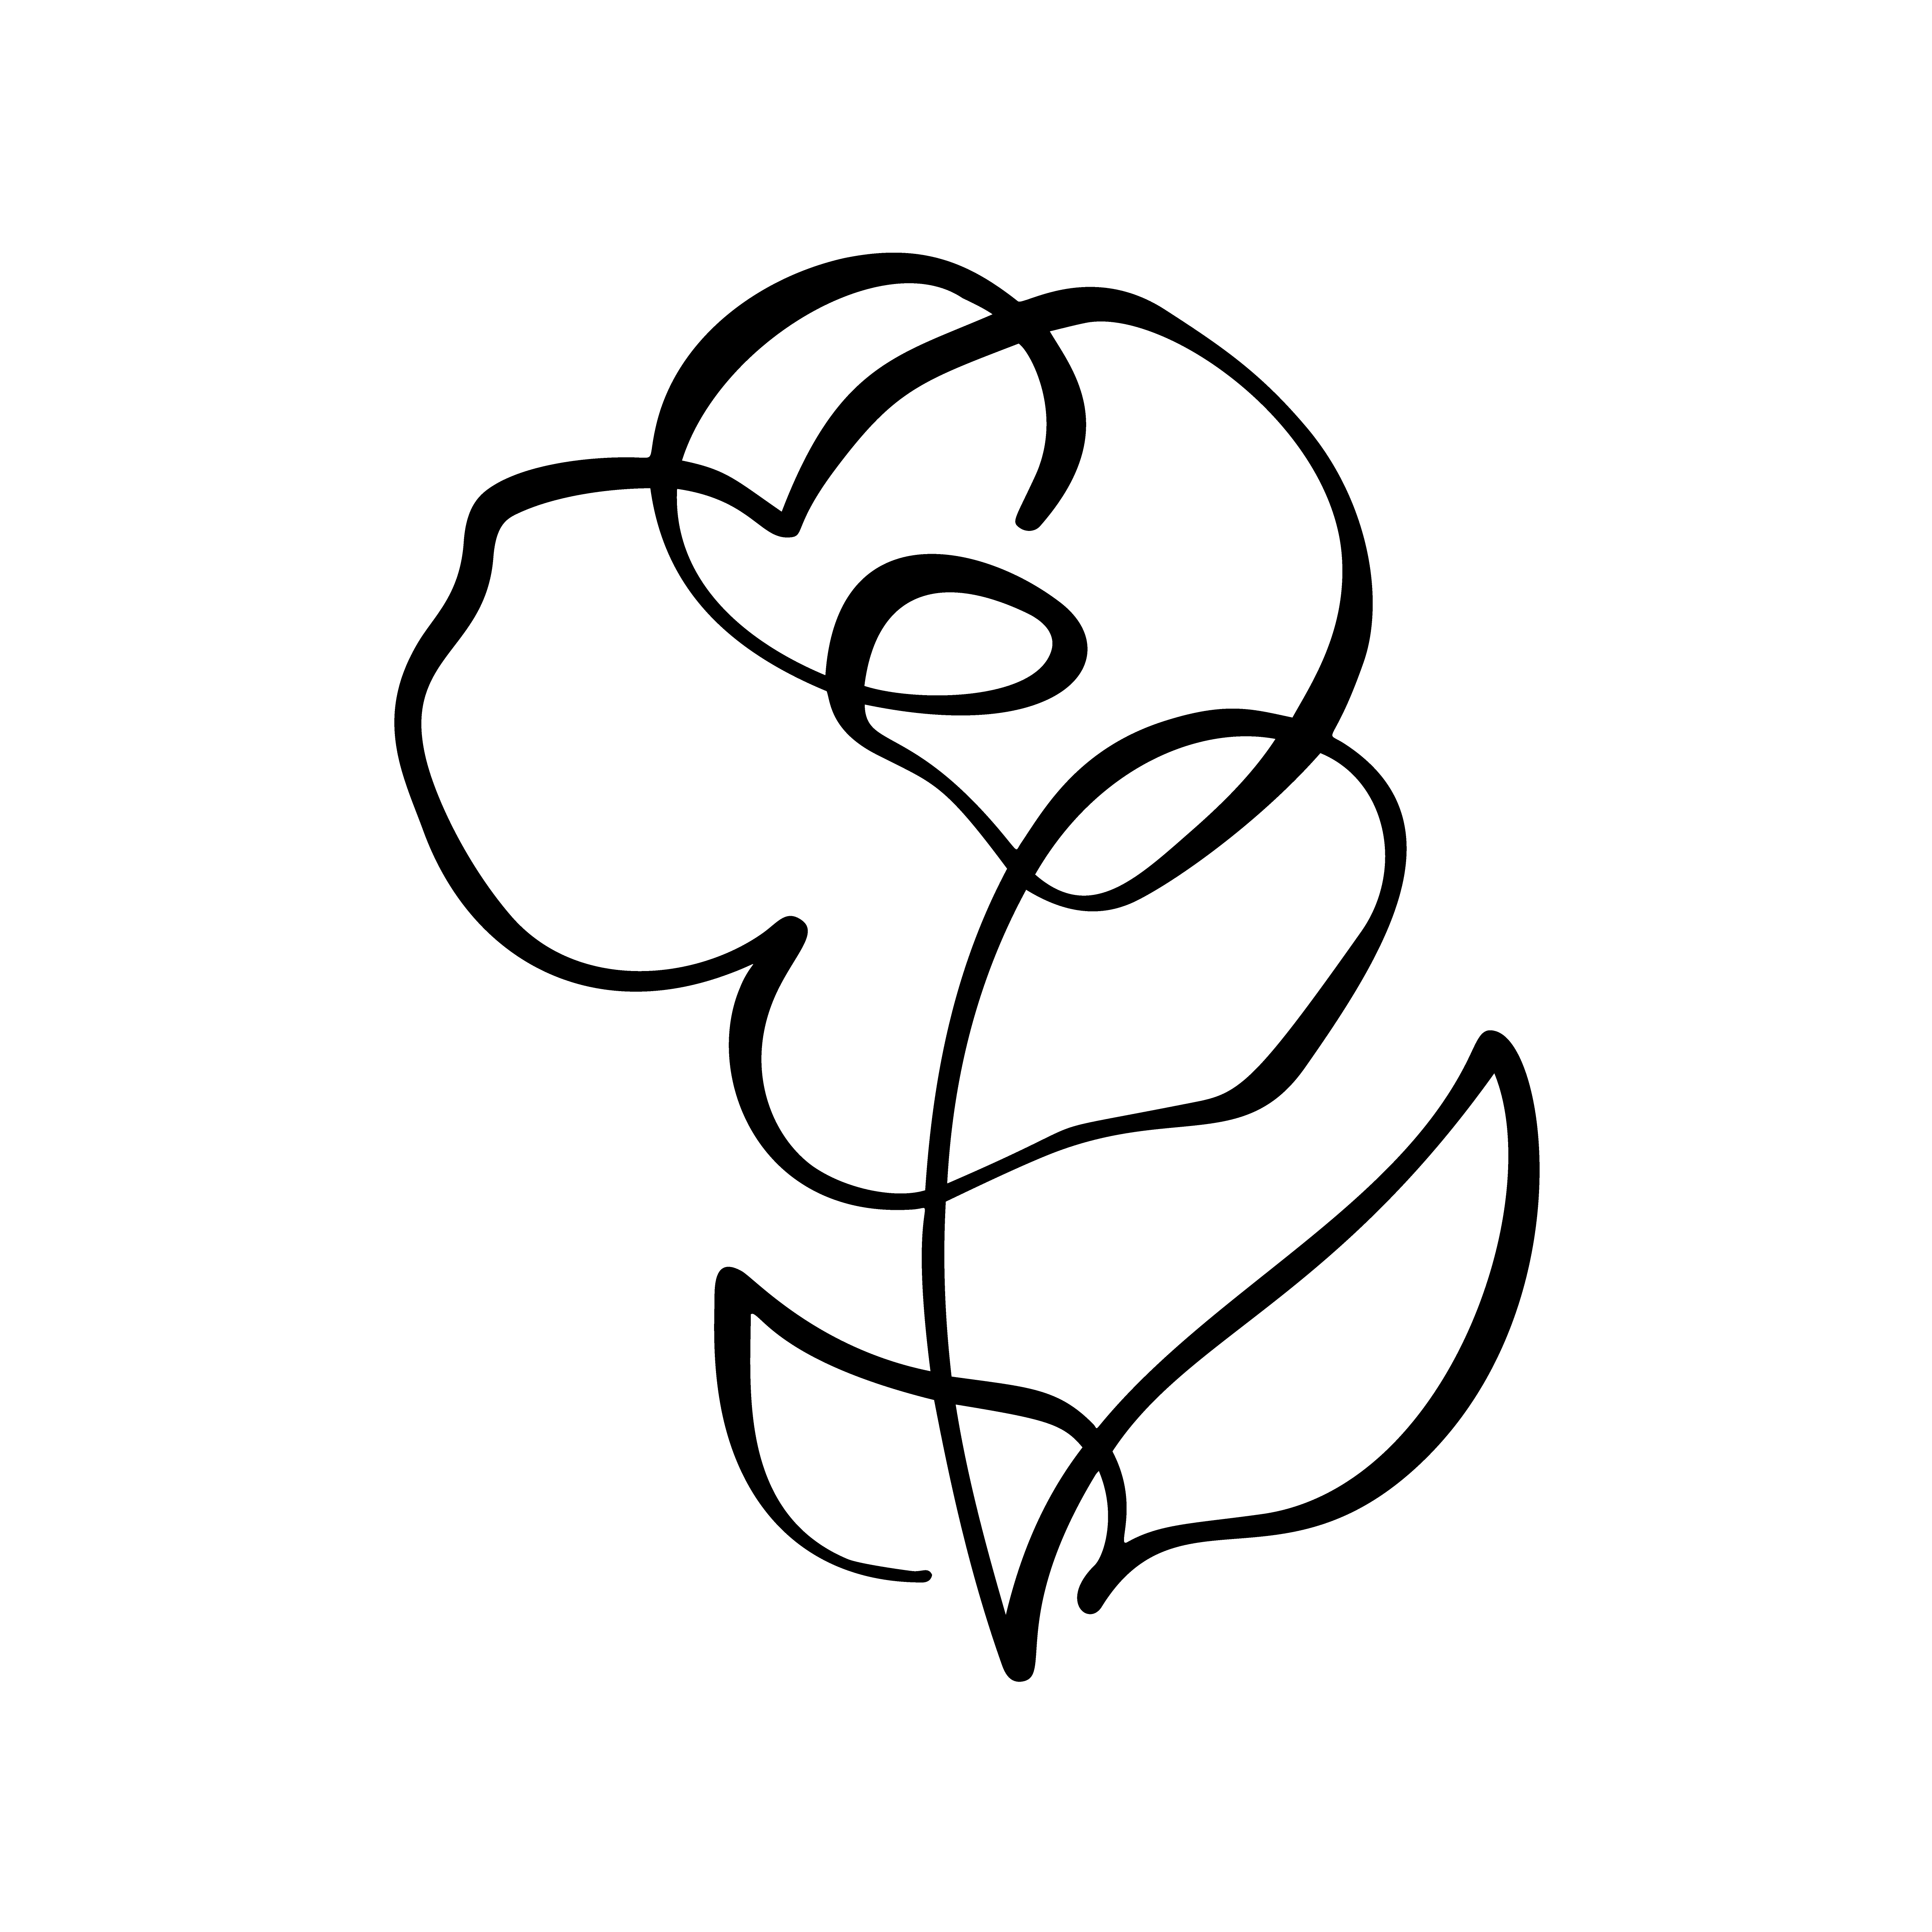 5000x5000 Rose Flower Concept Continuous Line Hand Drawing Calligraphic